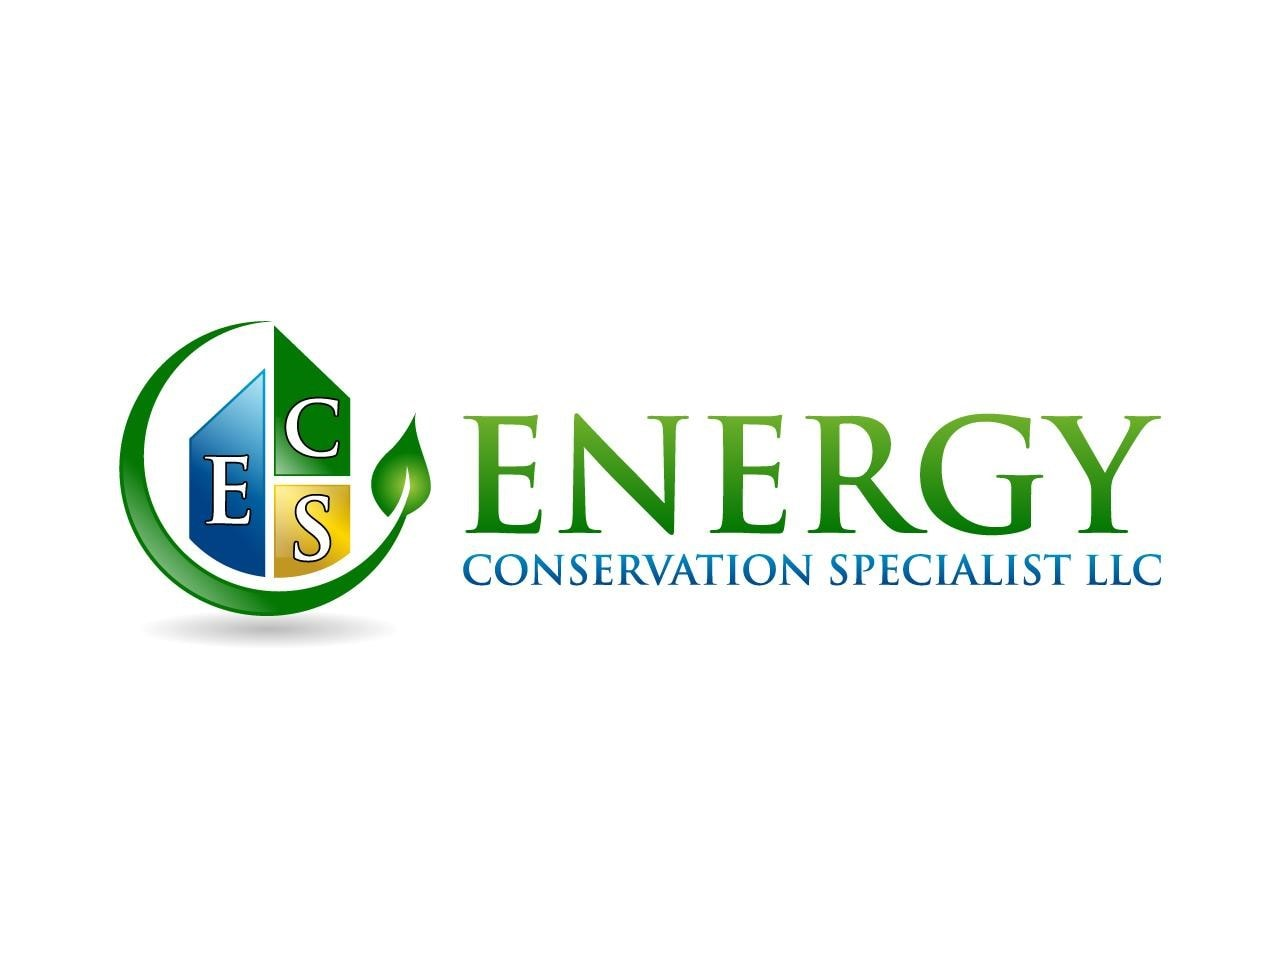 Energy Conservation Specialist LLC